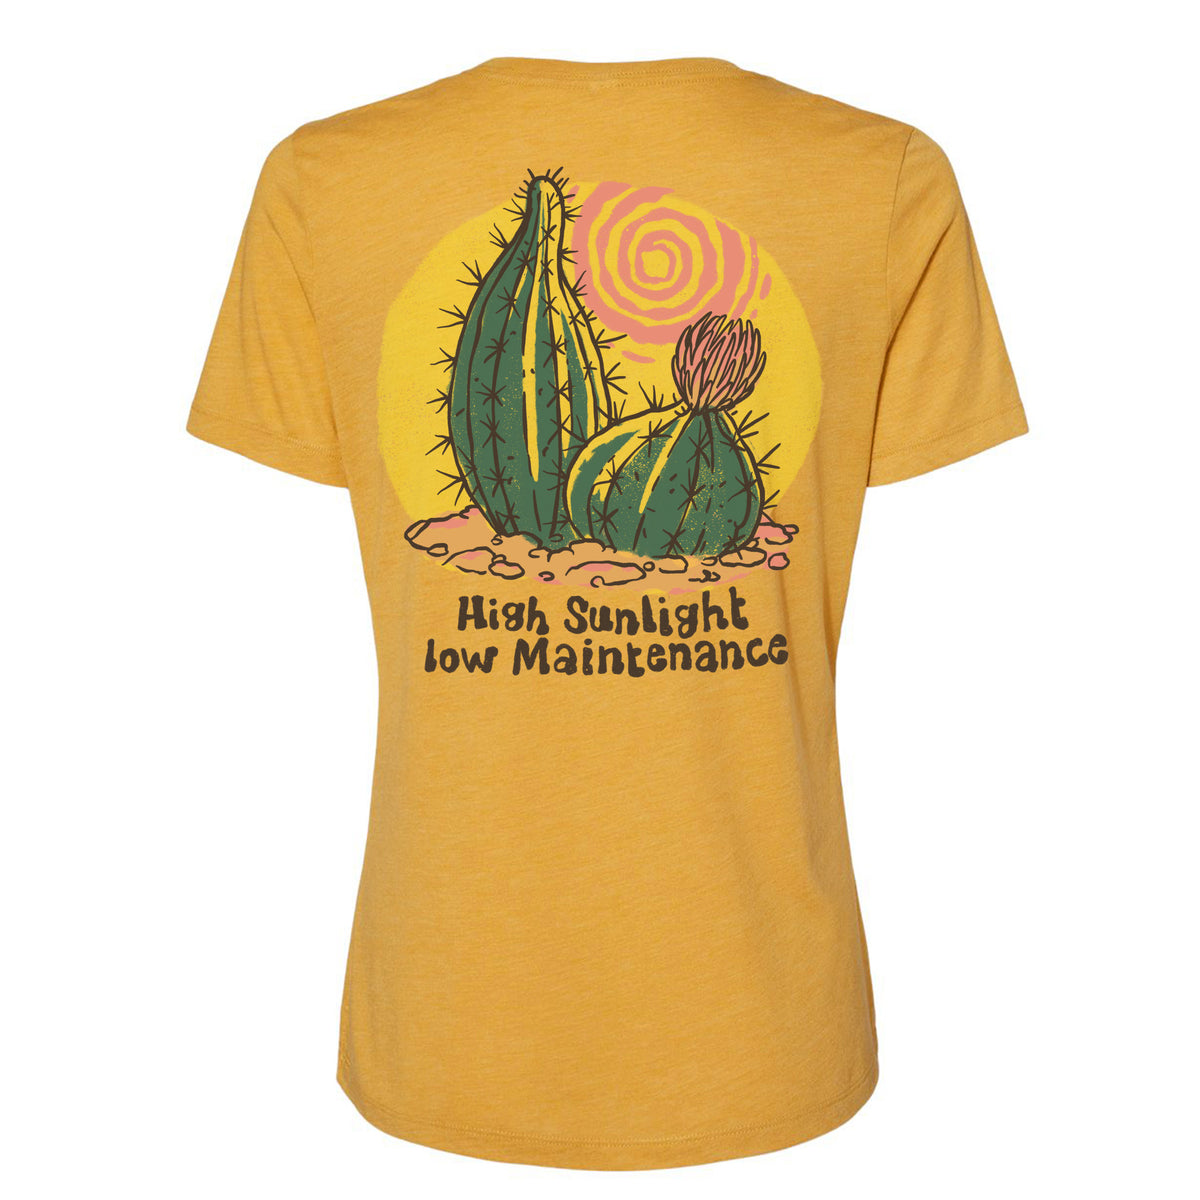 High Sunlight, Low Maintenance Women's Tee